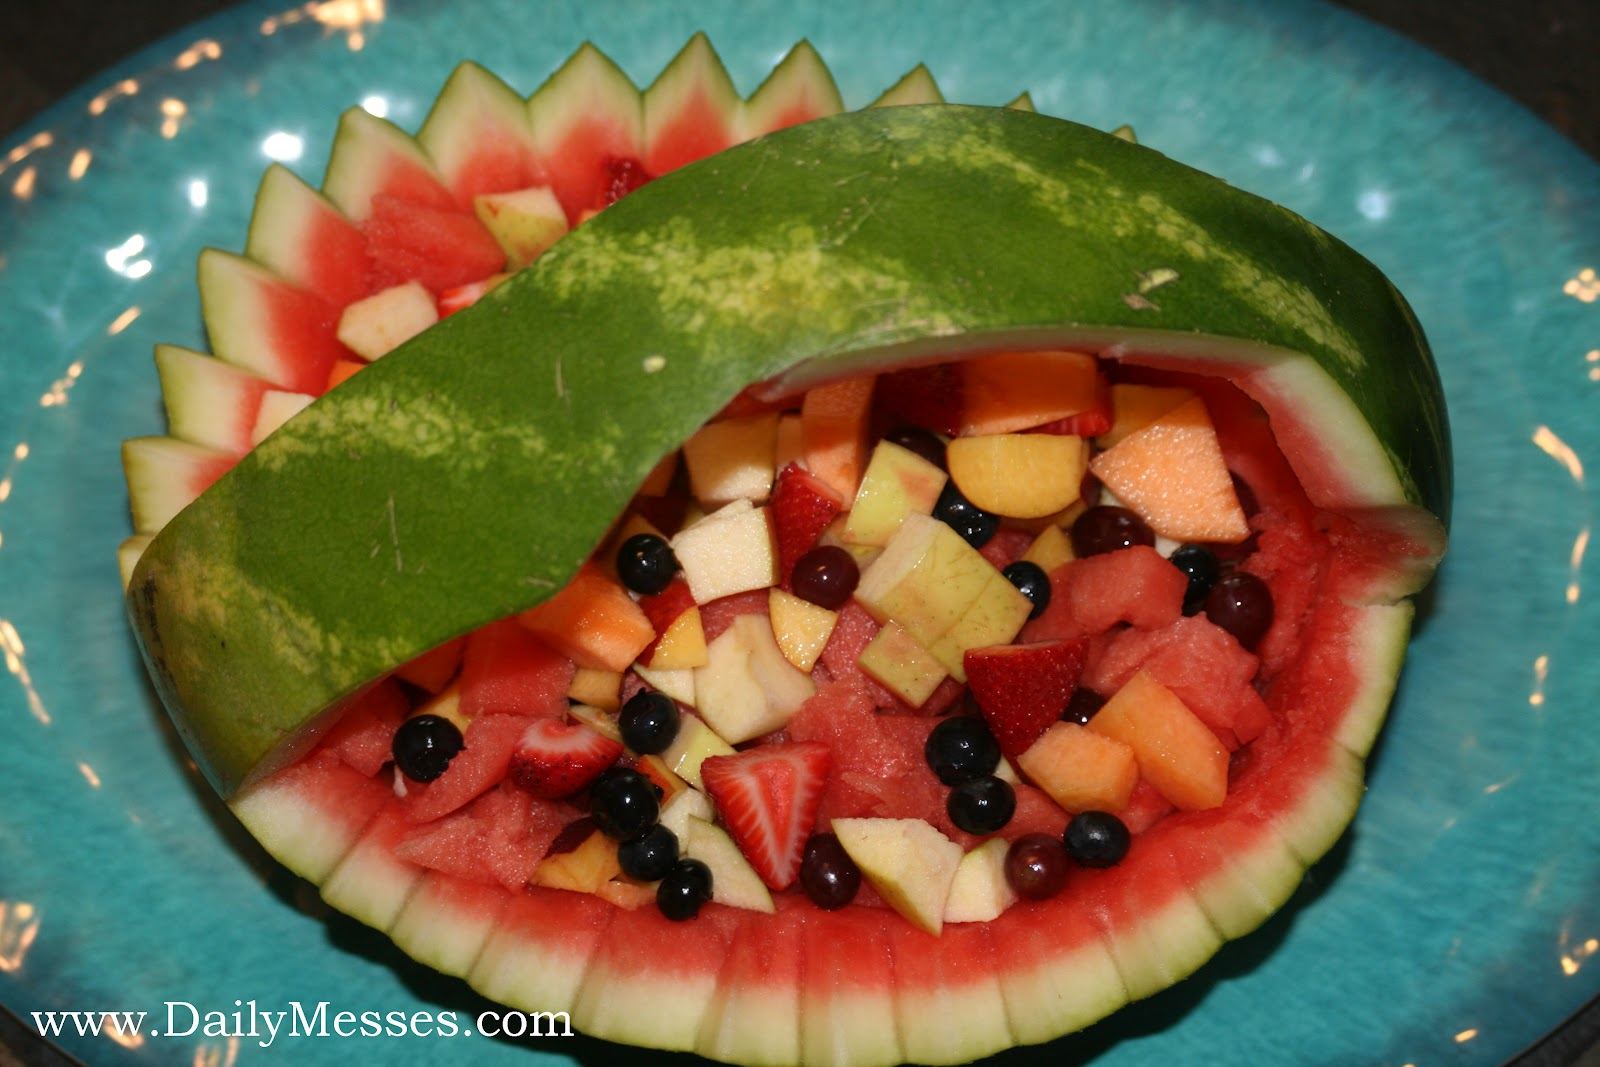 Daily Messes Watermelon Basket